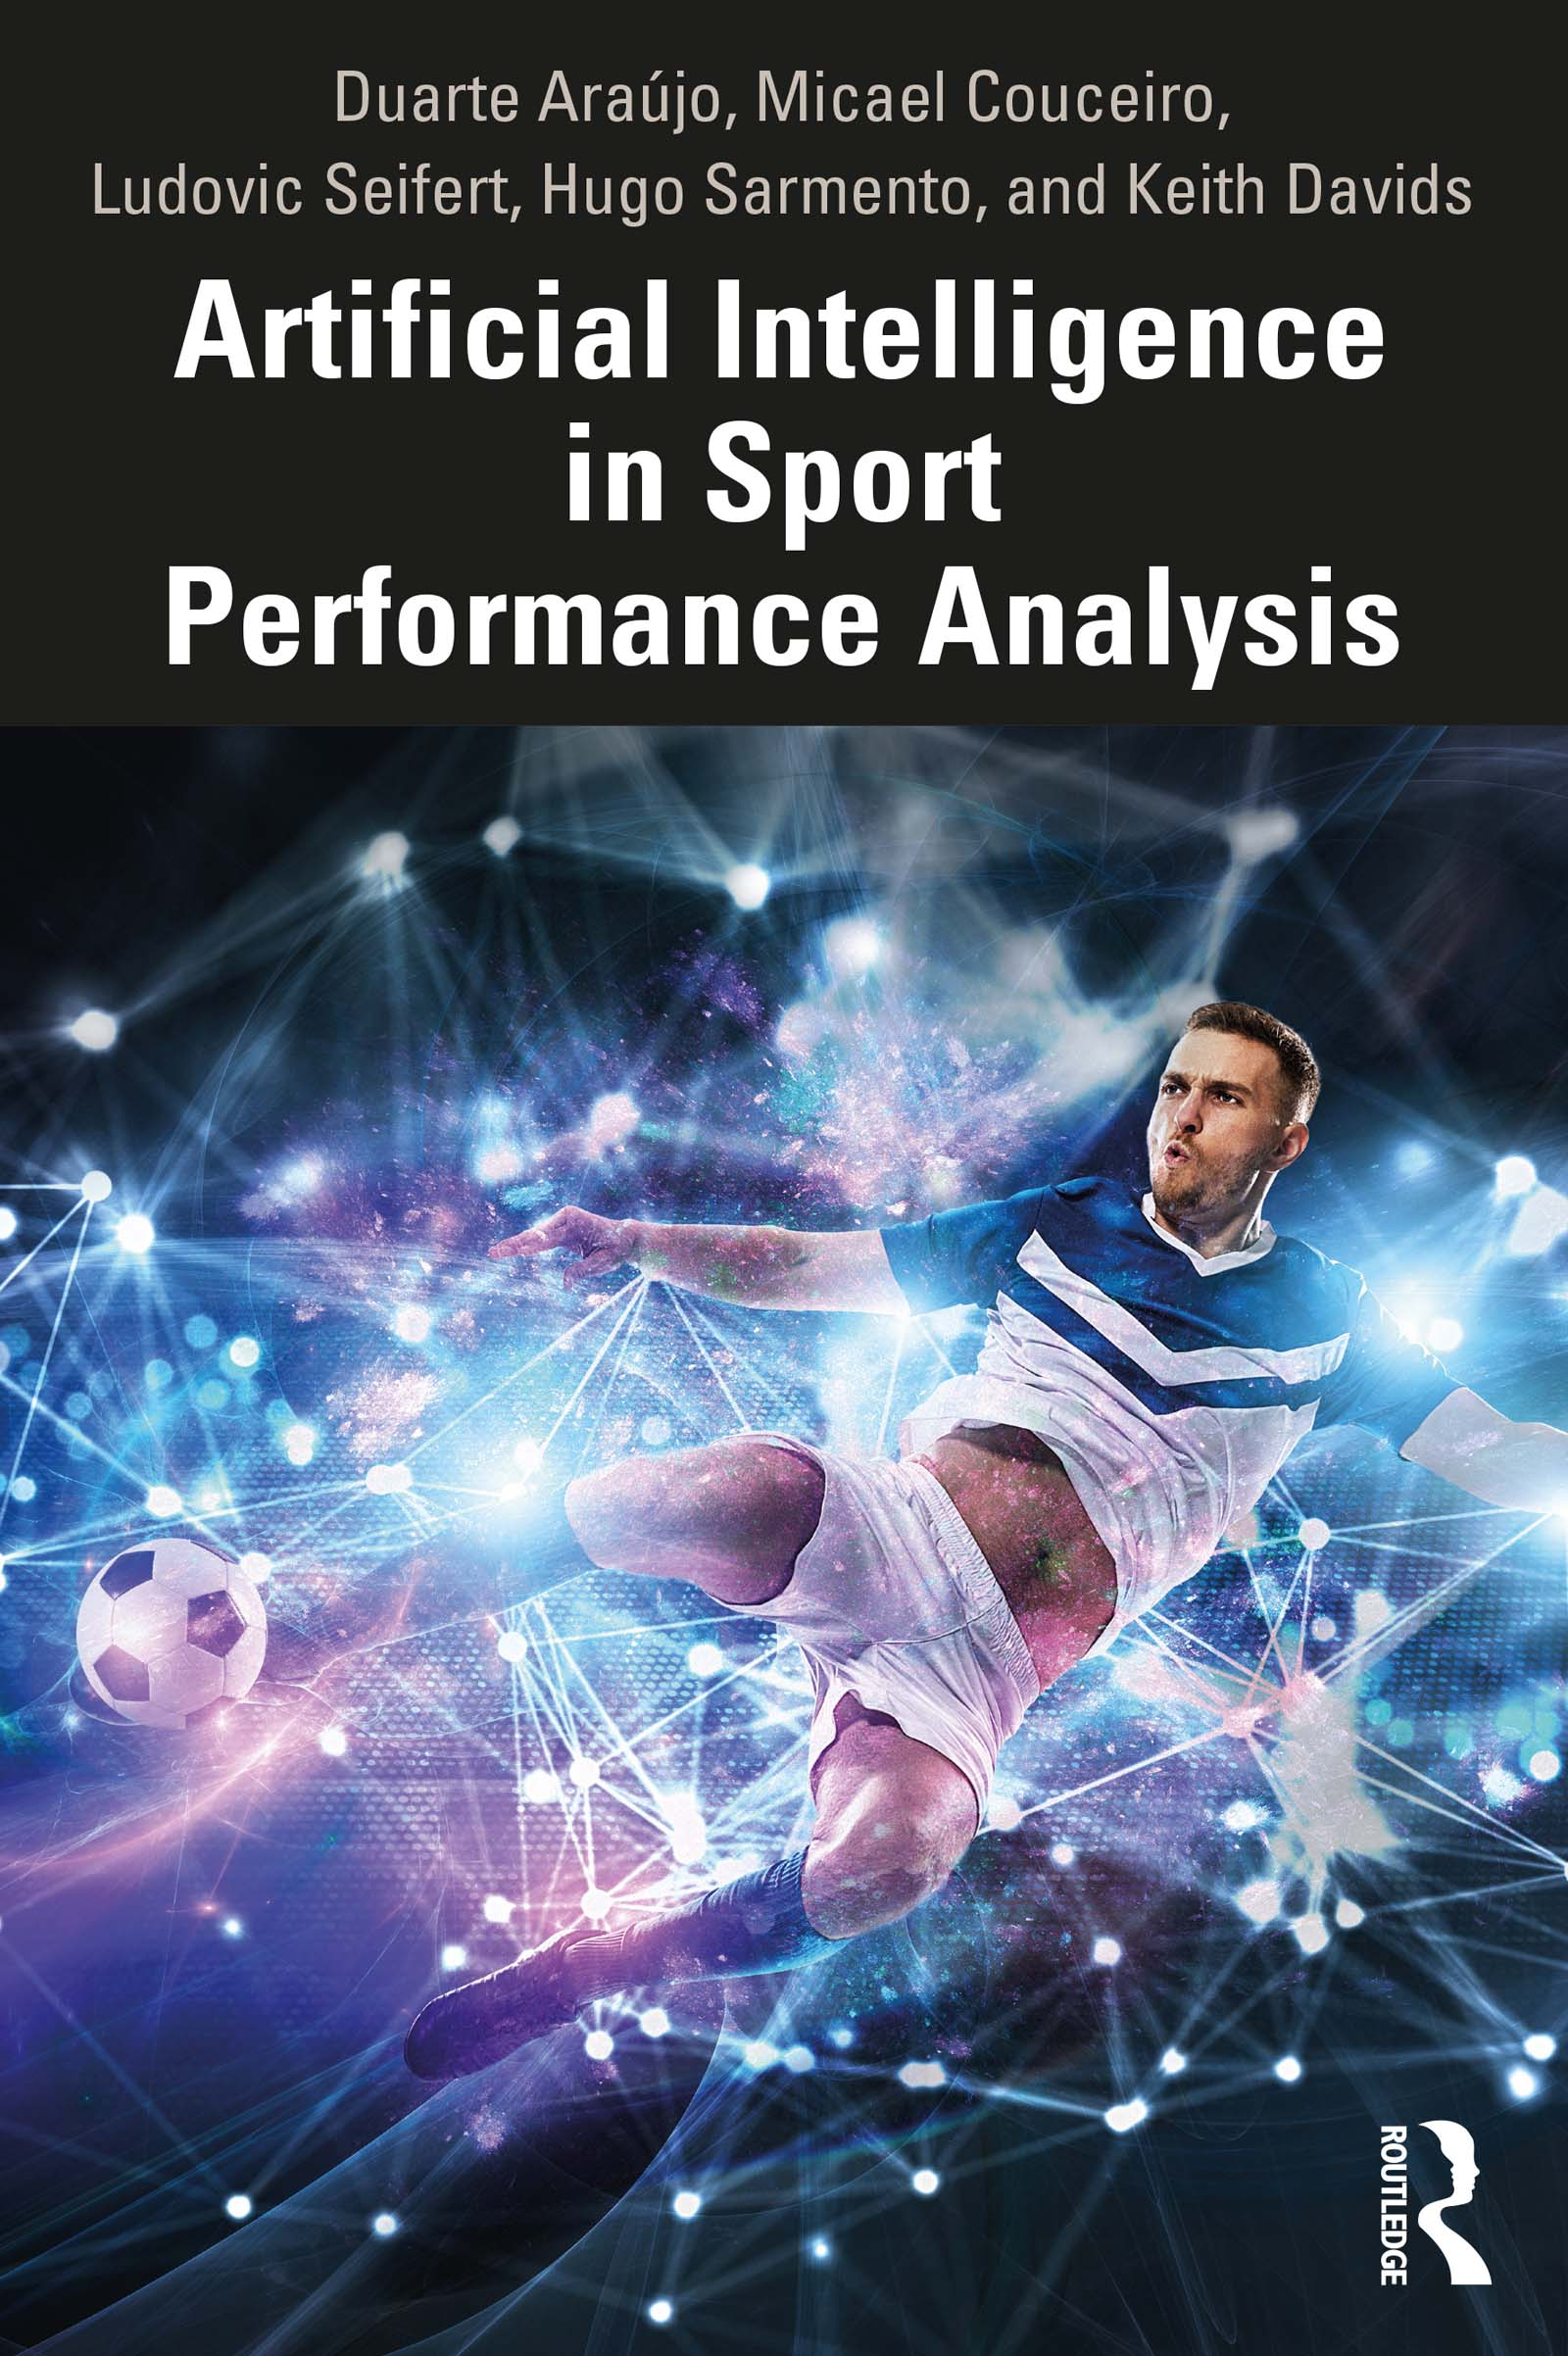 Artificial Intelligence for Pattern Recognition in Sports